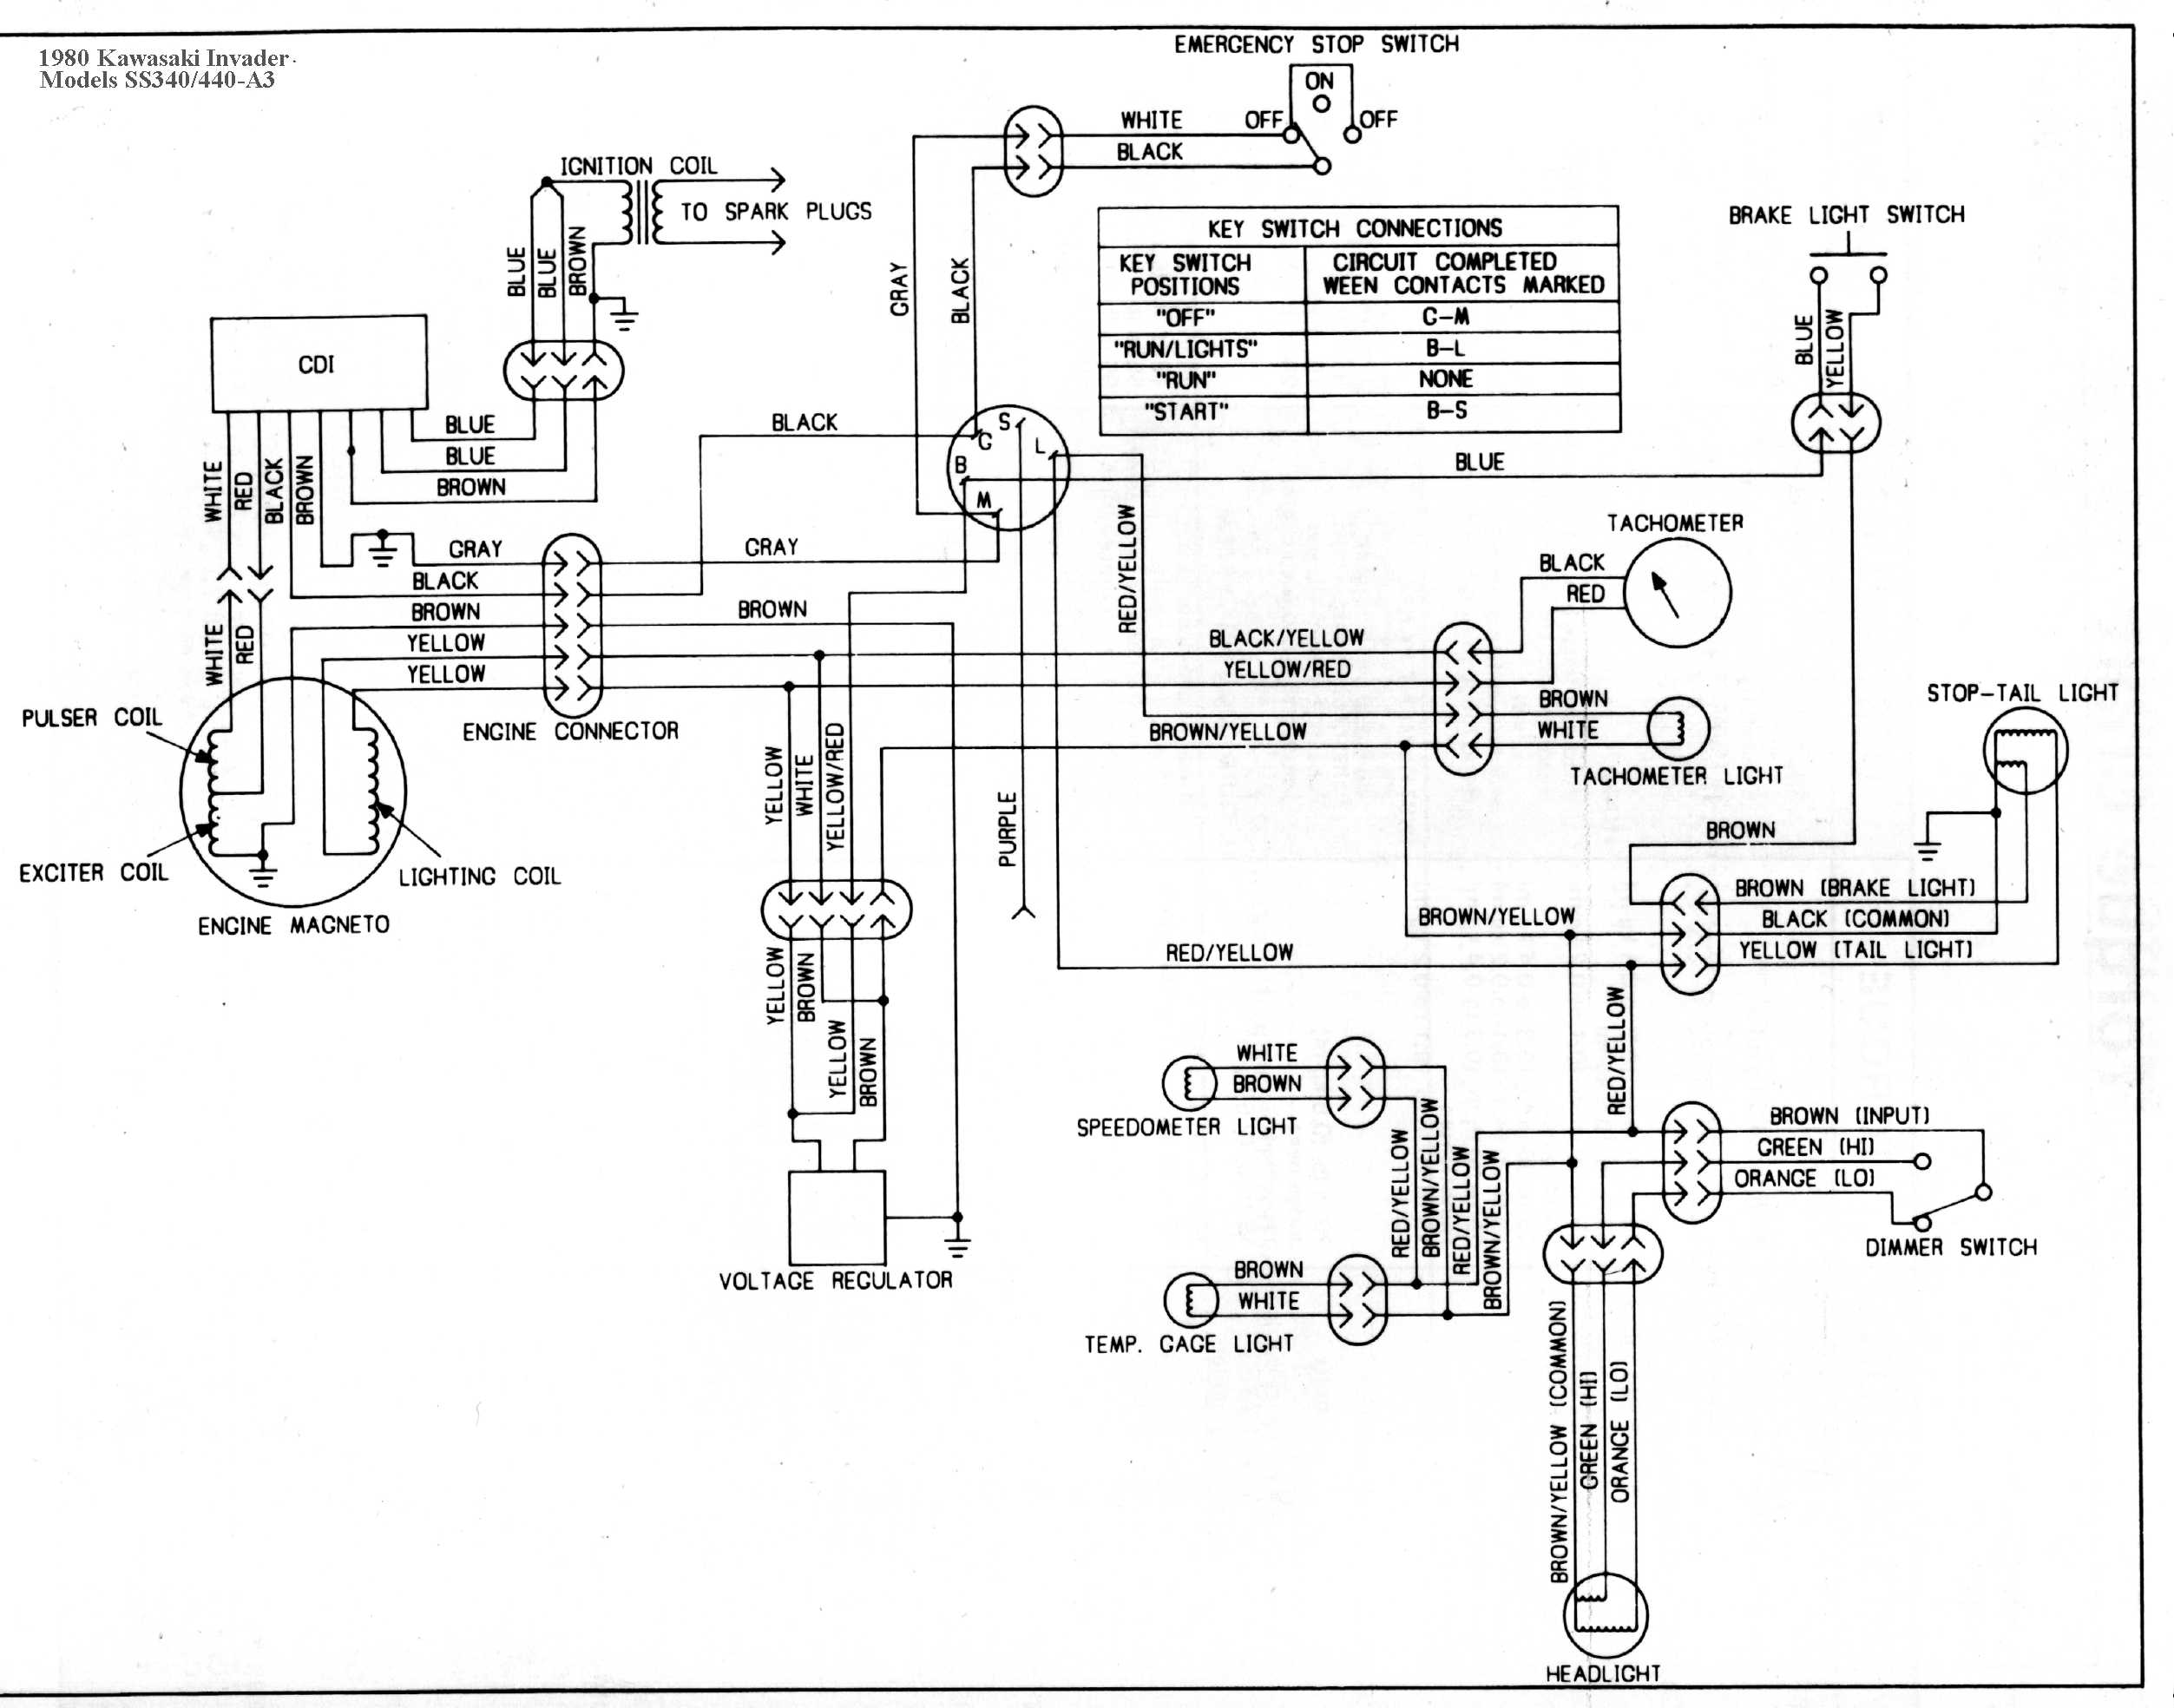 small resolution of arctic cat cougar 440 snowmobile wiring diagram electrical wiring 1996 arctic cat el tigre arctic cat 440 snowmobile wiring diagrams